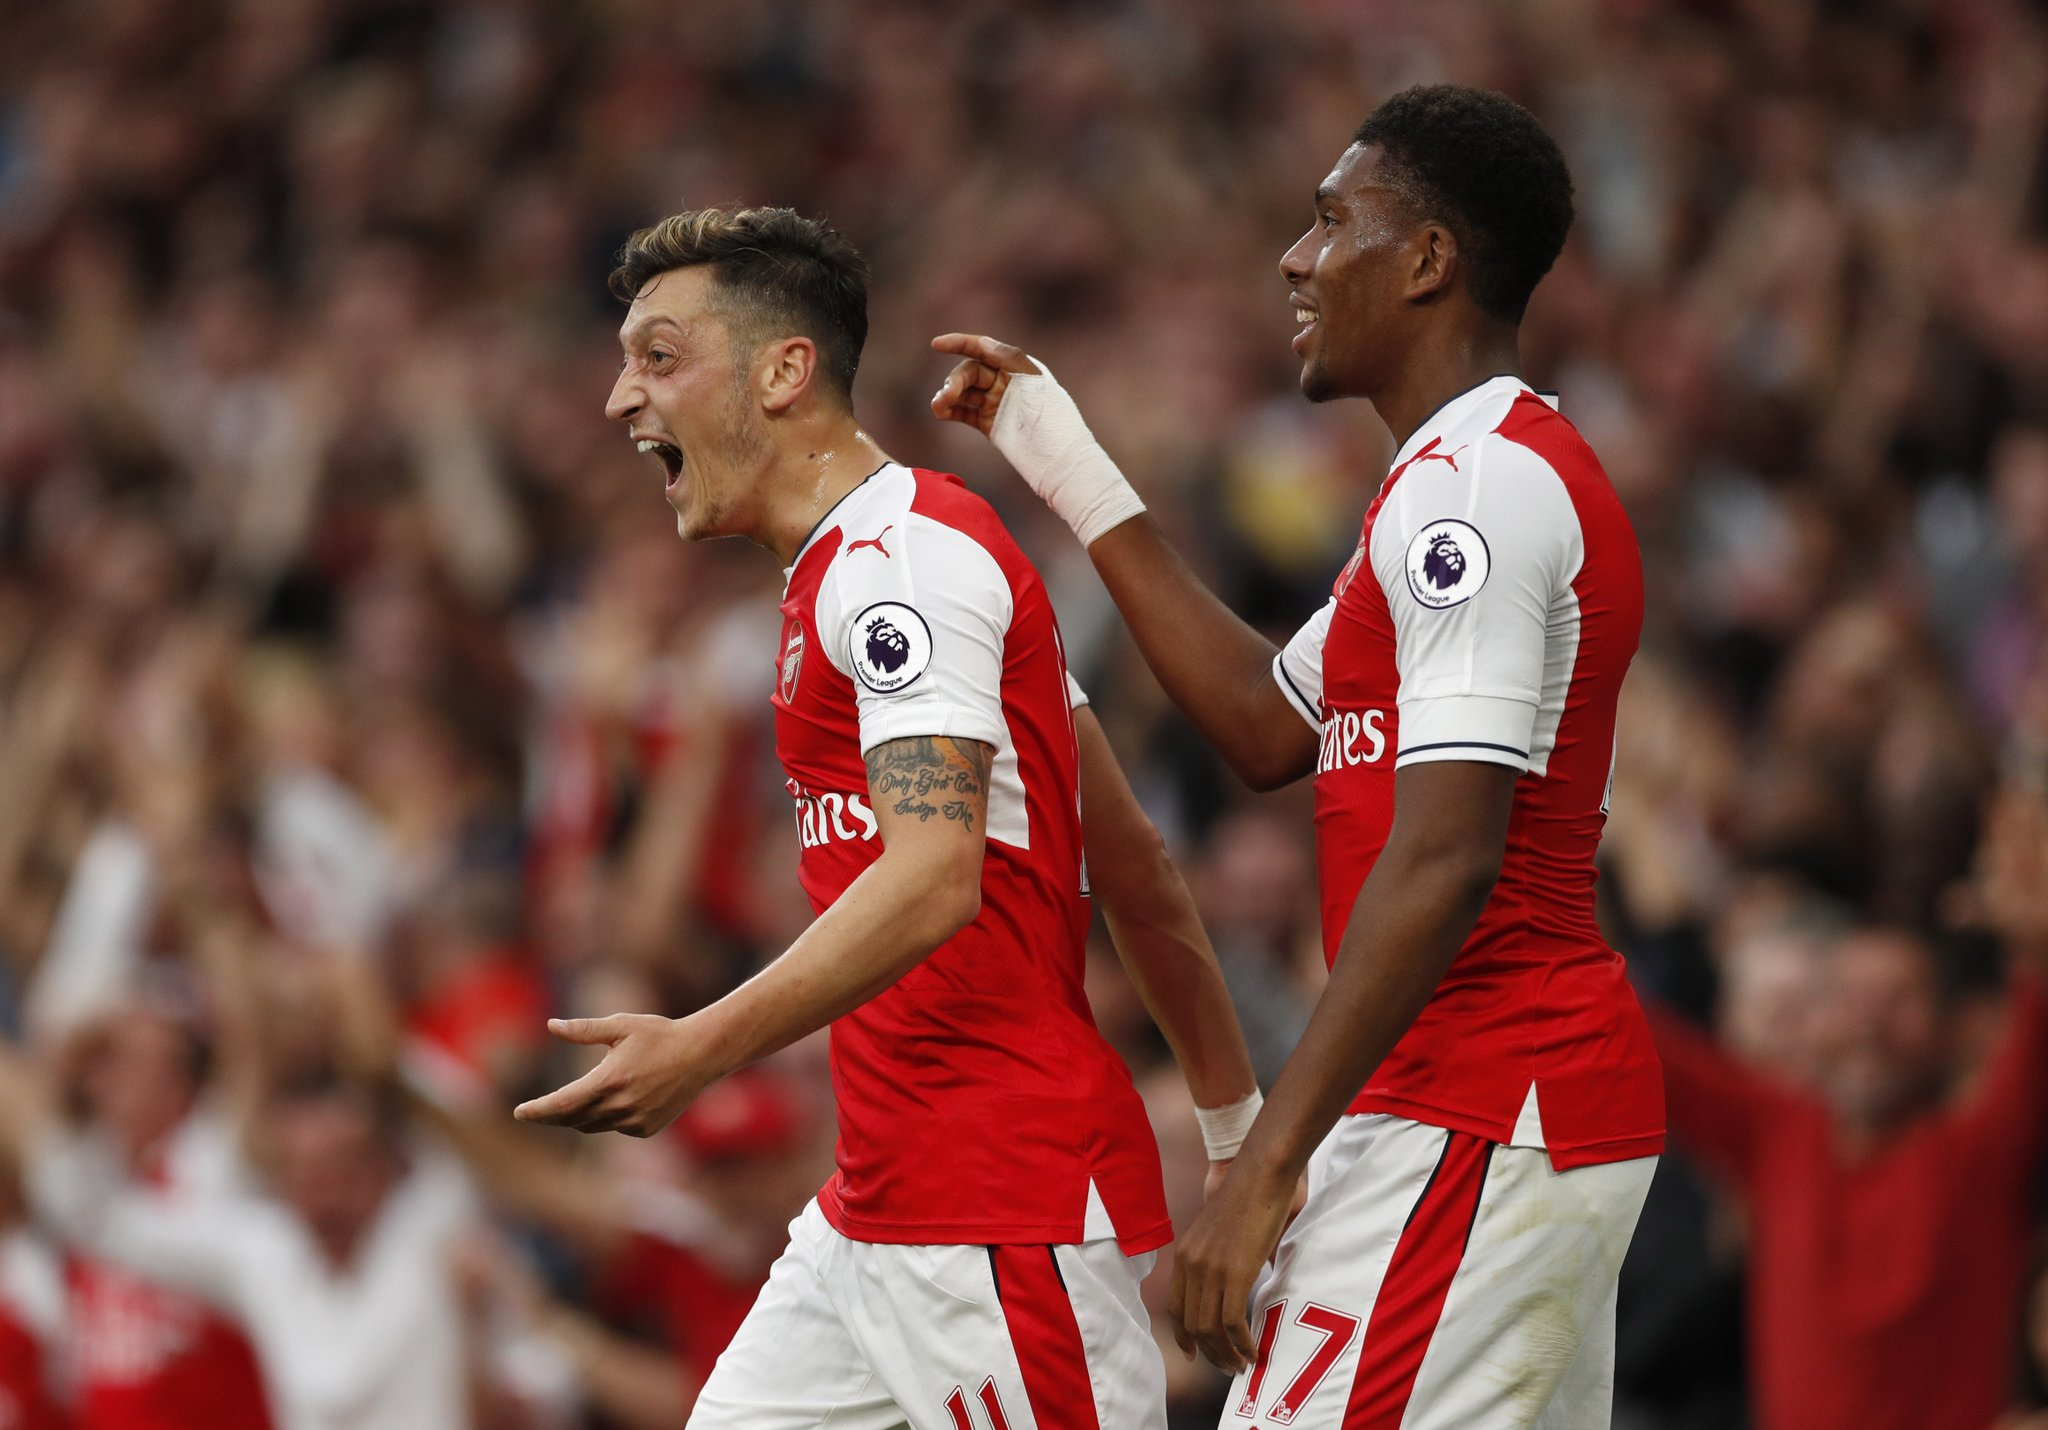 Iwobi Happy With Award Vs Chelsea, Backs Arsenal To Get Stronger